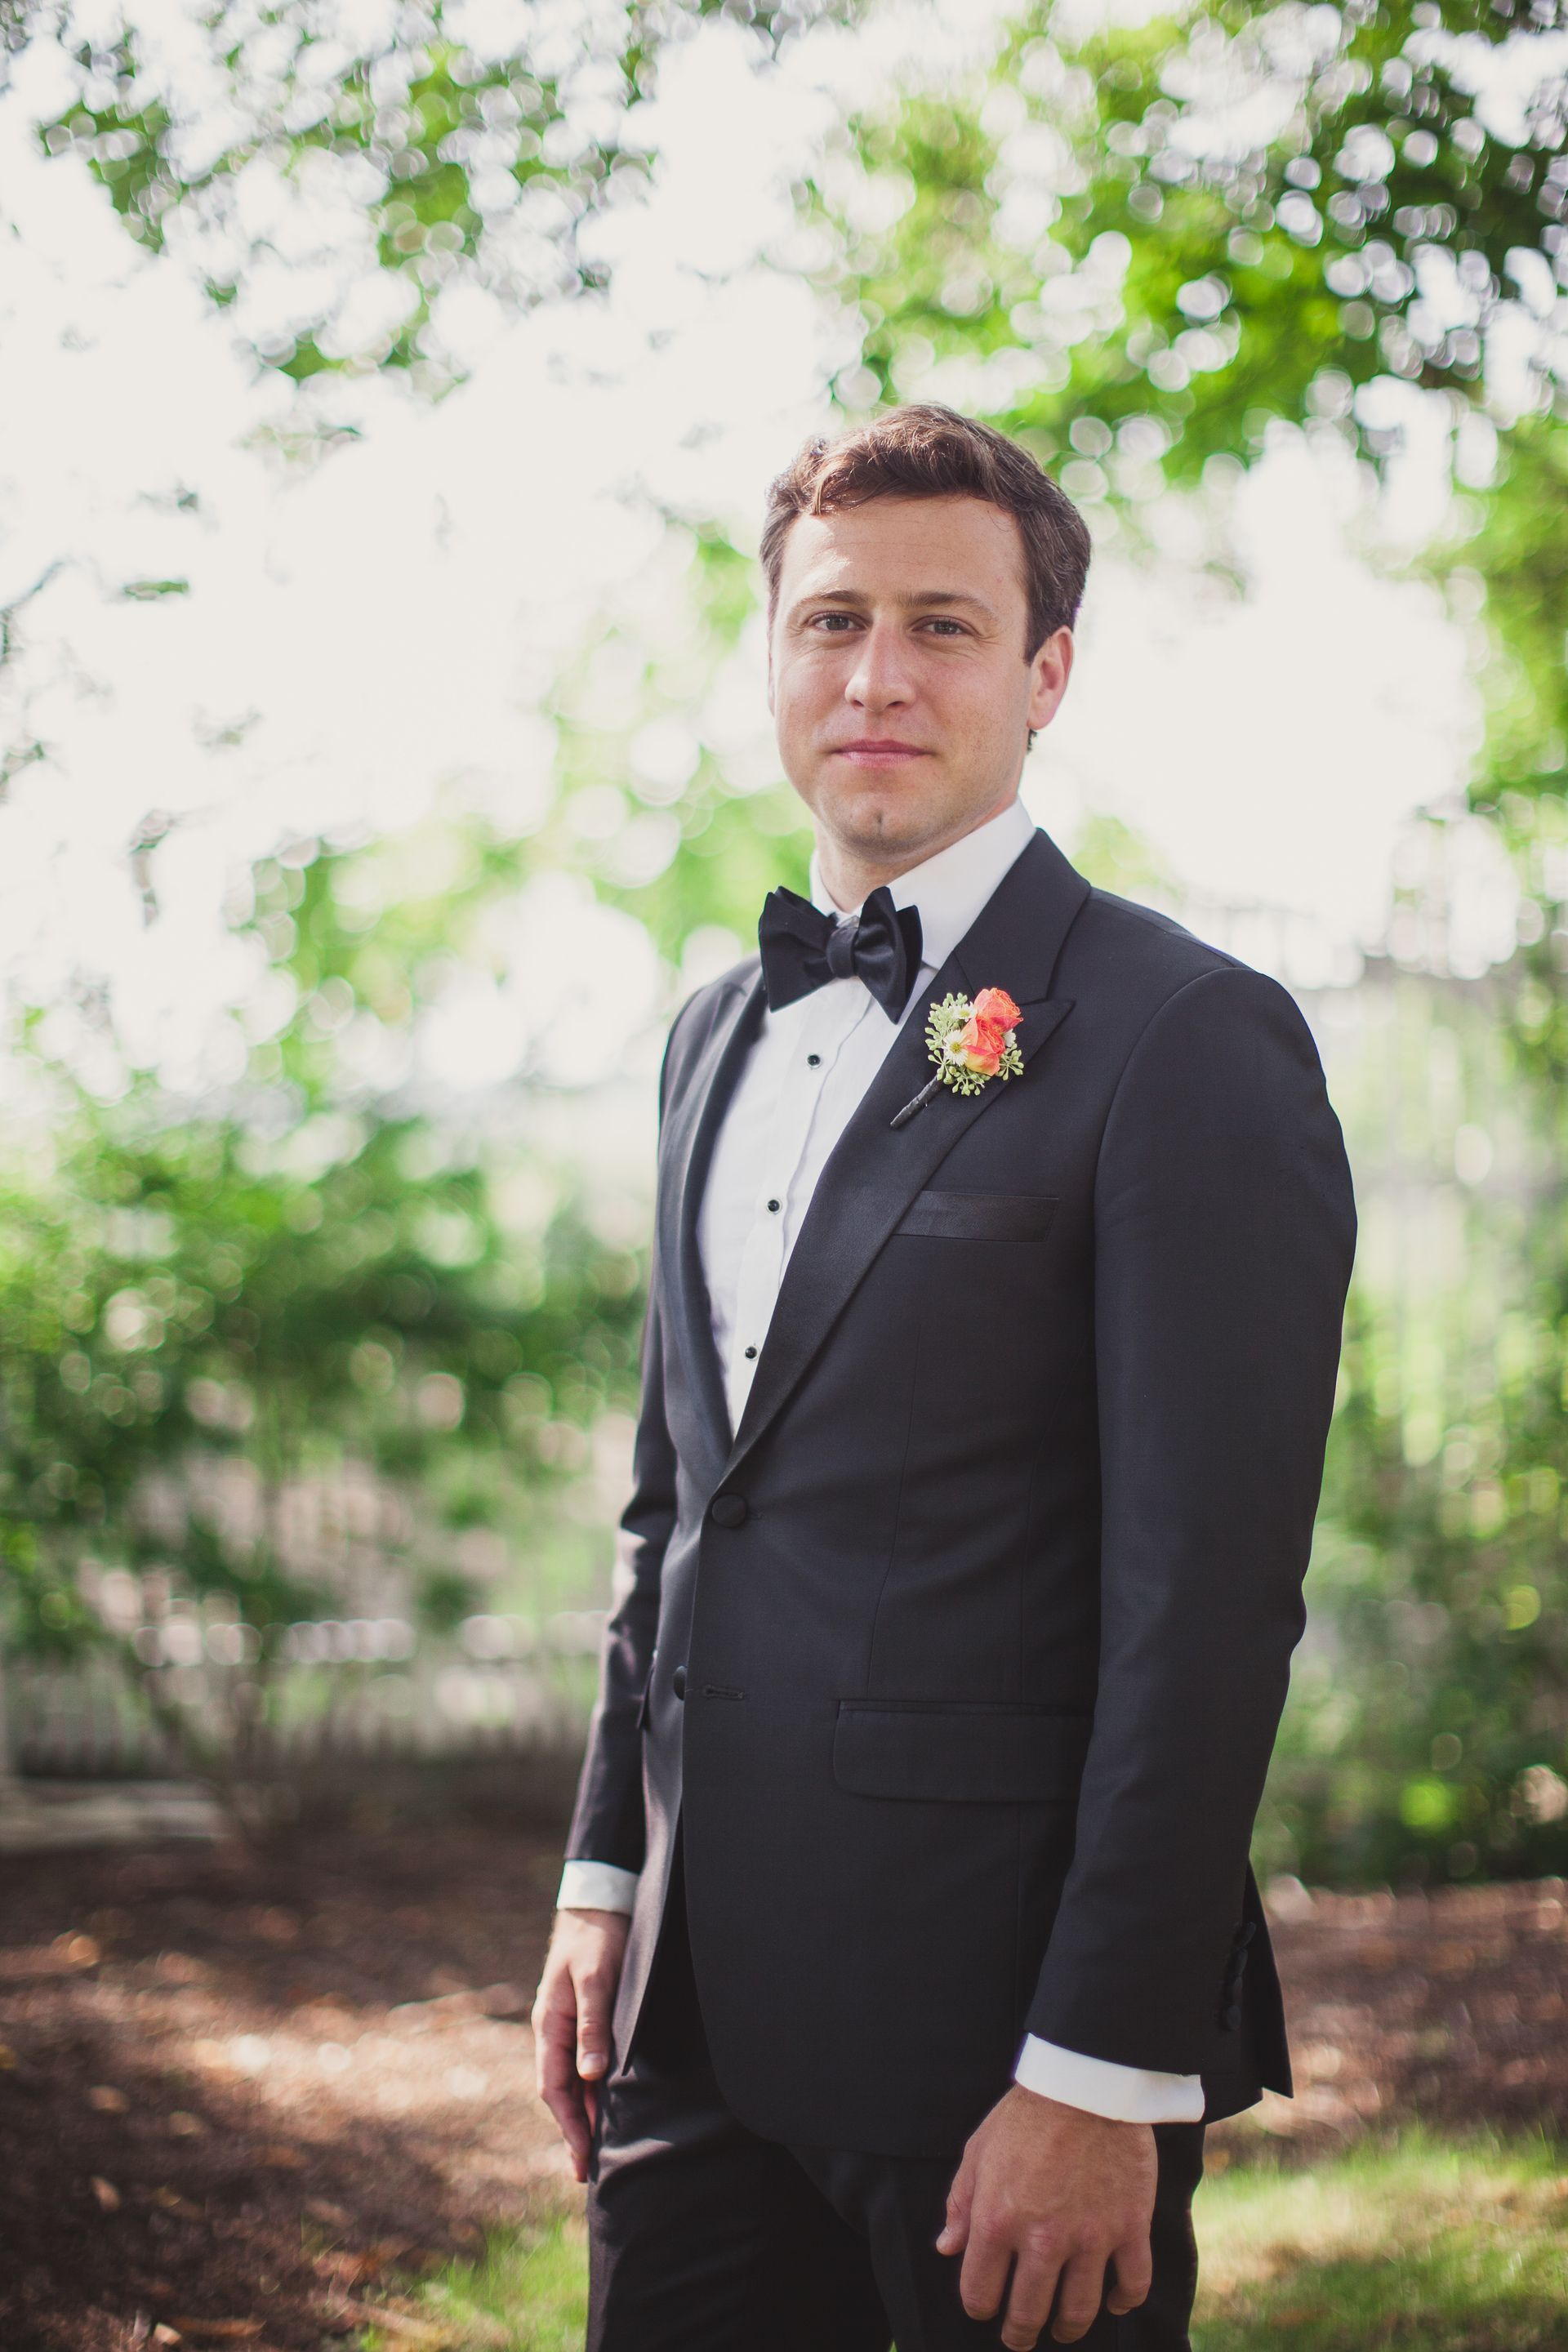 Classic formal groom attire, black bowtie, bright coral boutonniere // Mariana Feely Photography